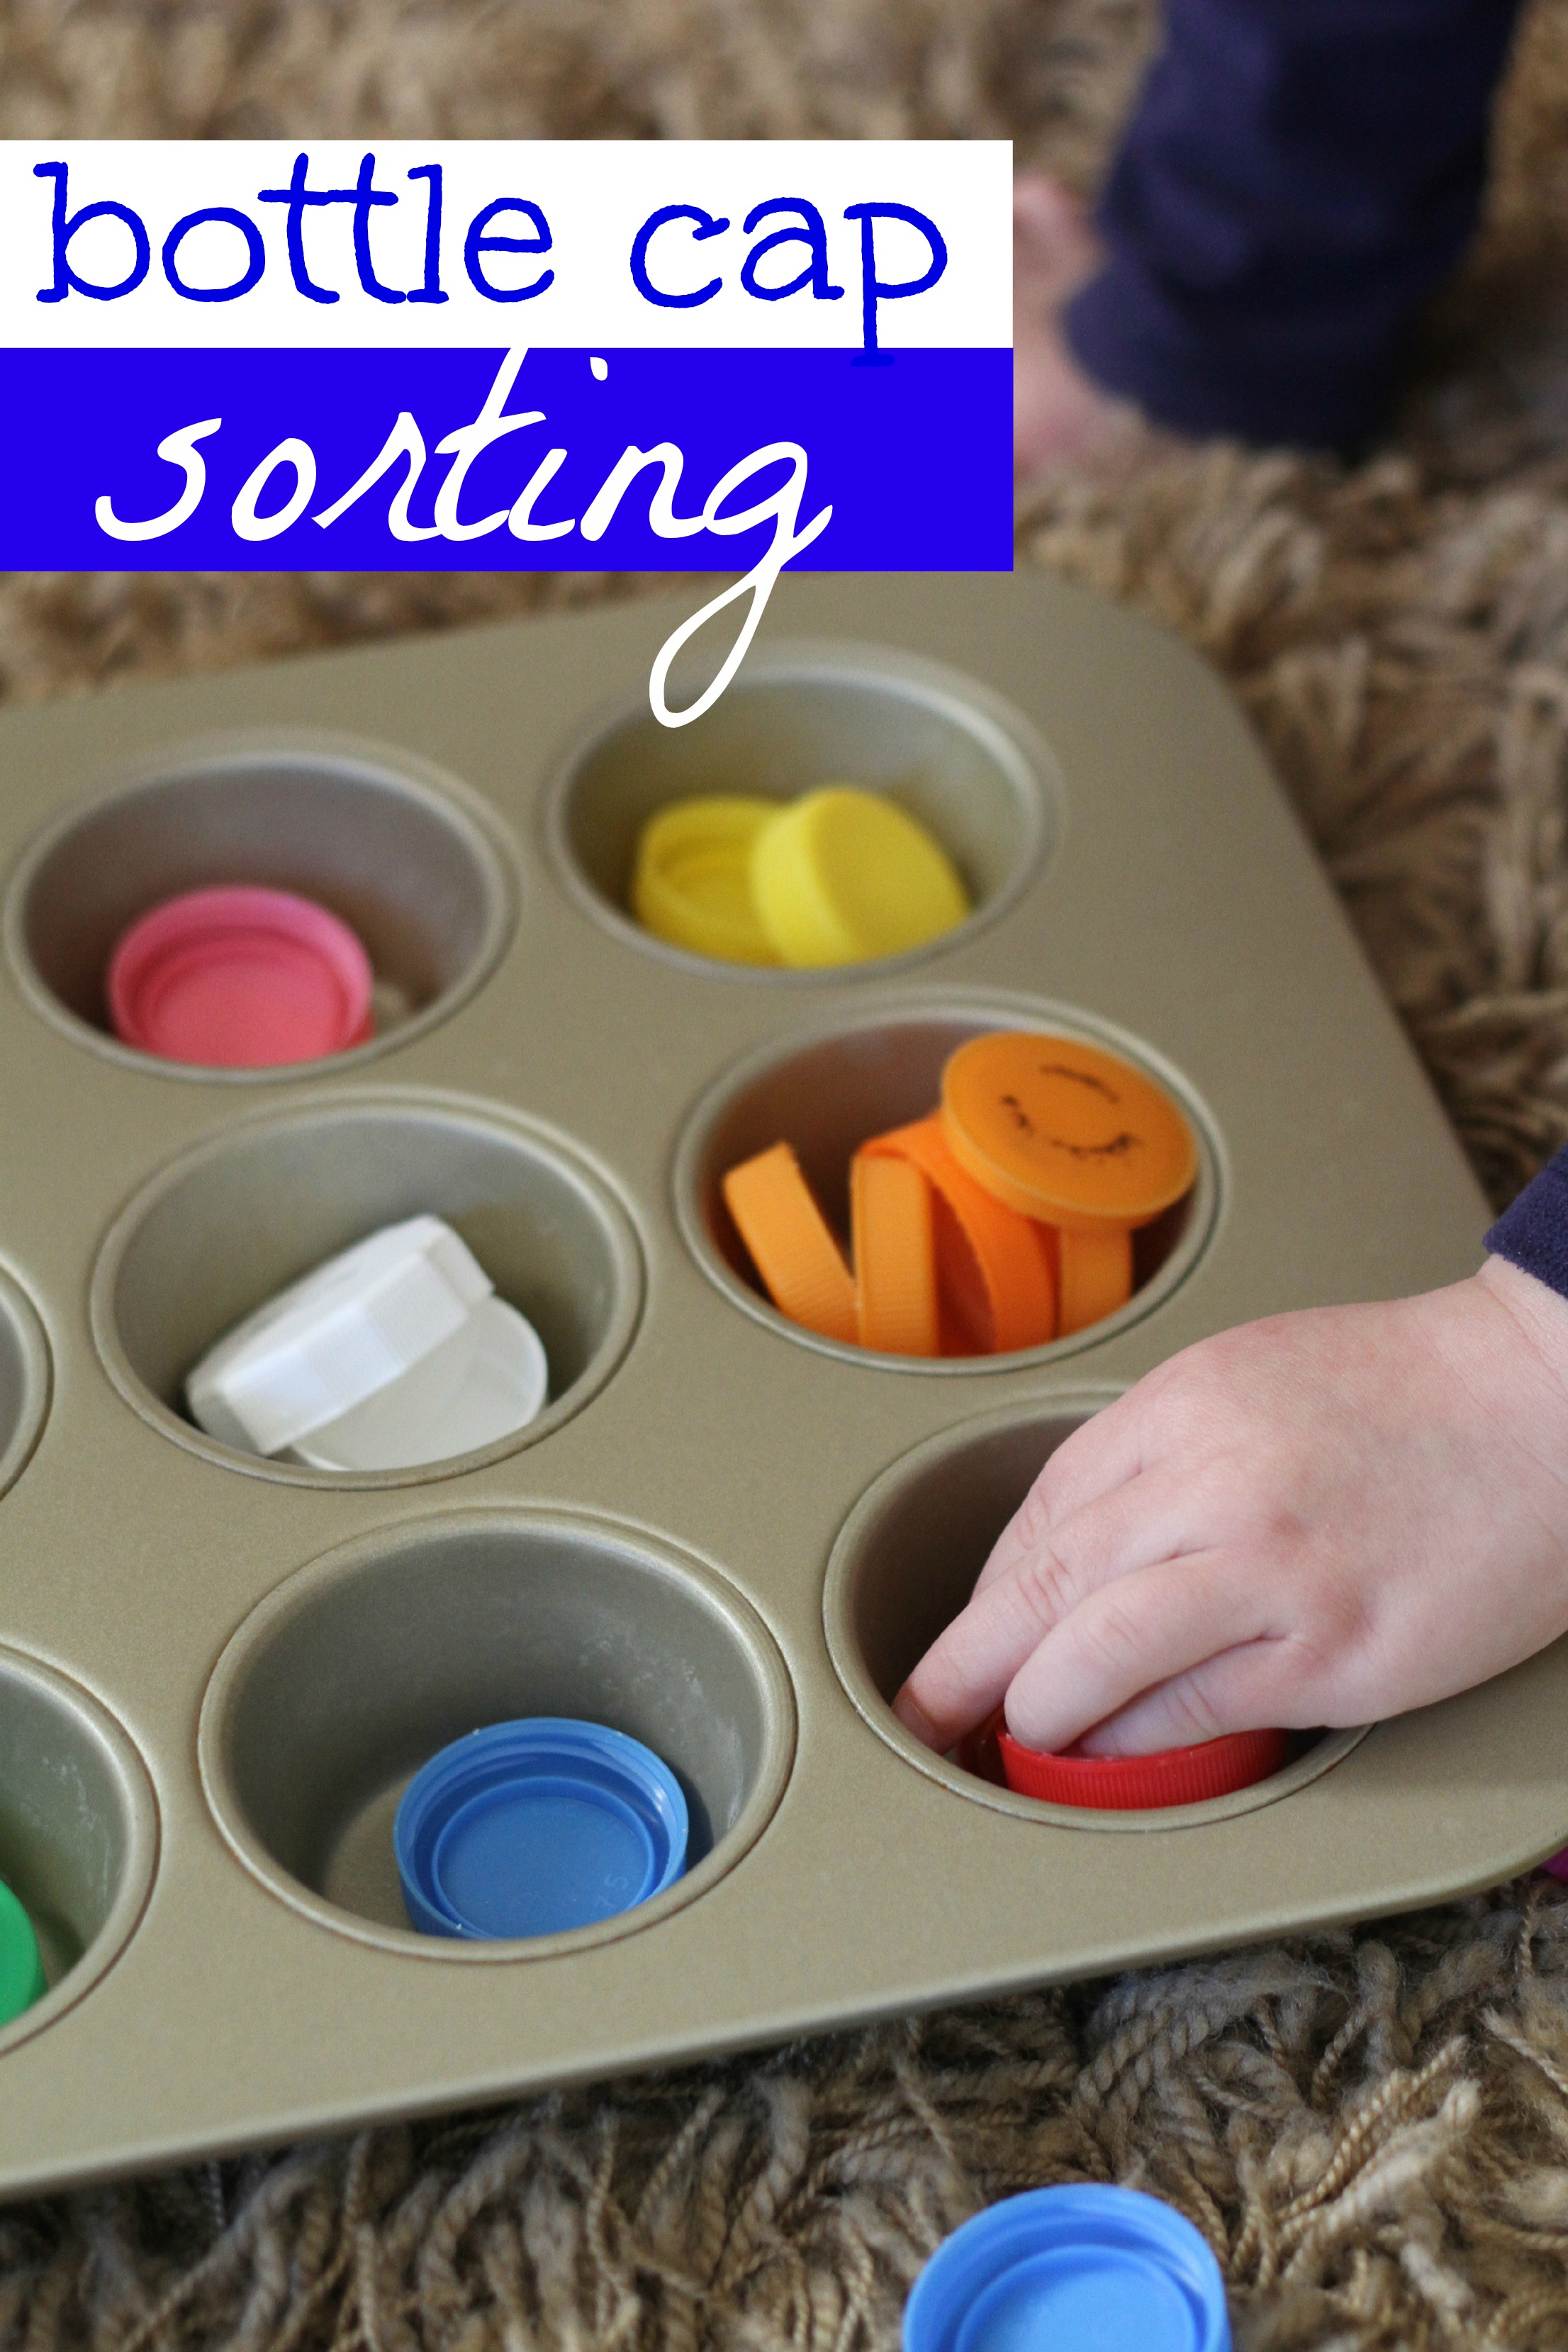 Bottle Cap Sorting - I Can Teach My Child!